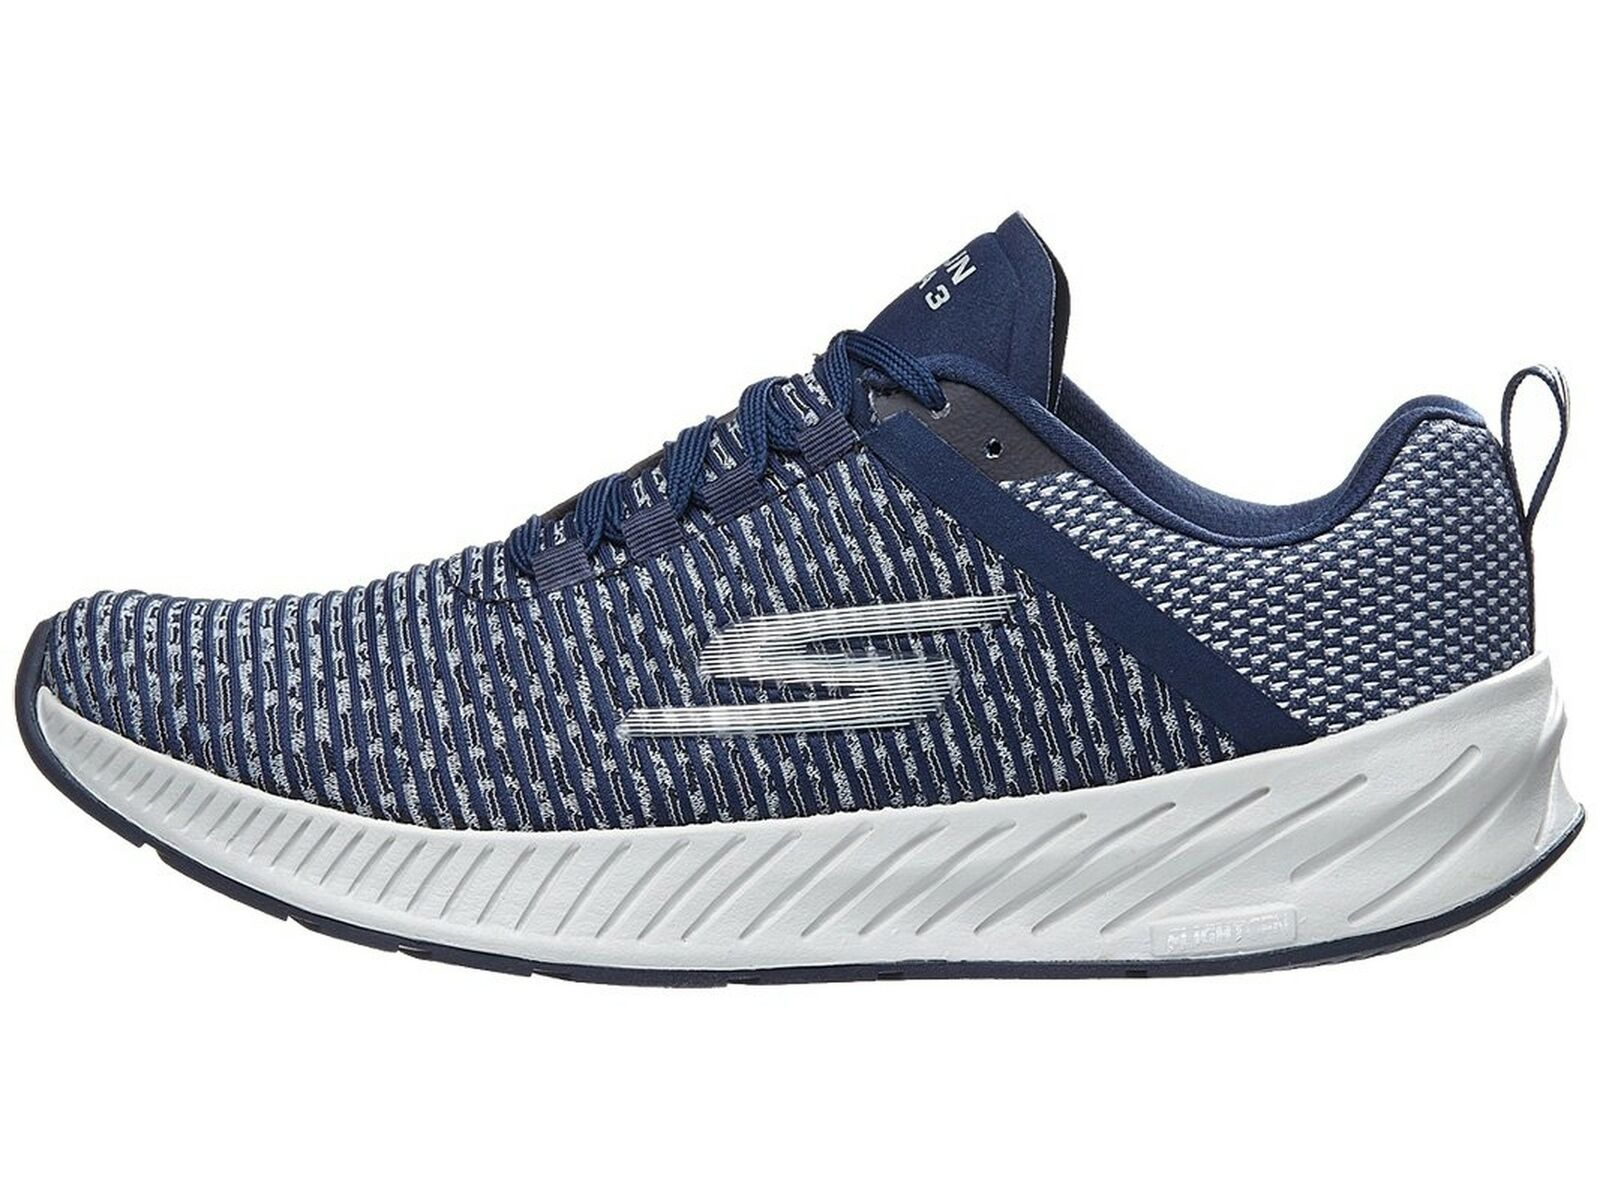 Skechers Mens Gorun Forza 3 Navy 13 D-Medio